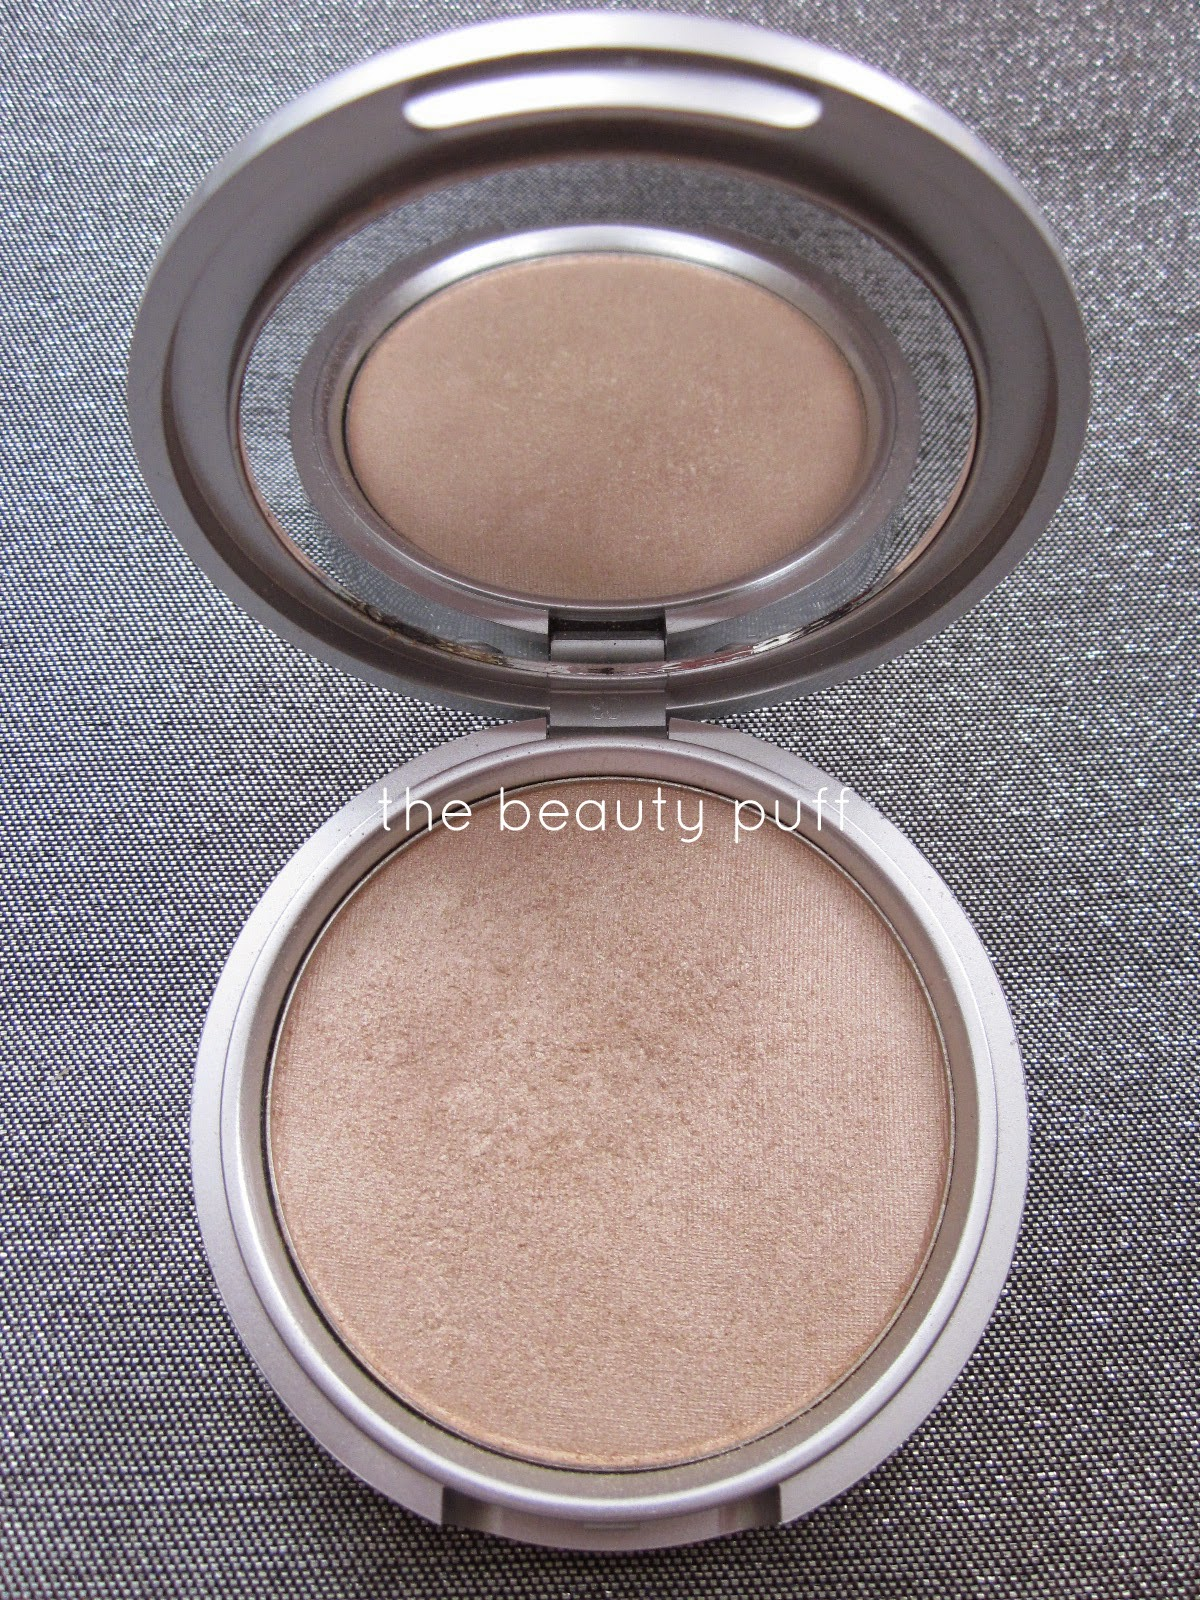 thebalm mary lou manizer - the beauty puff